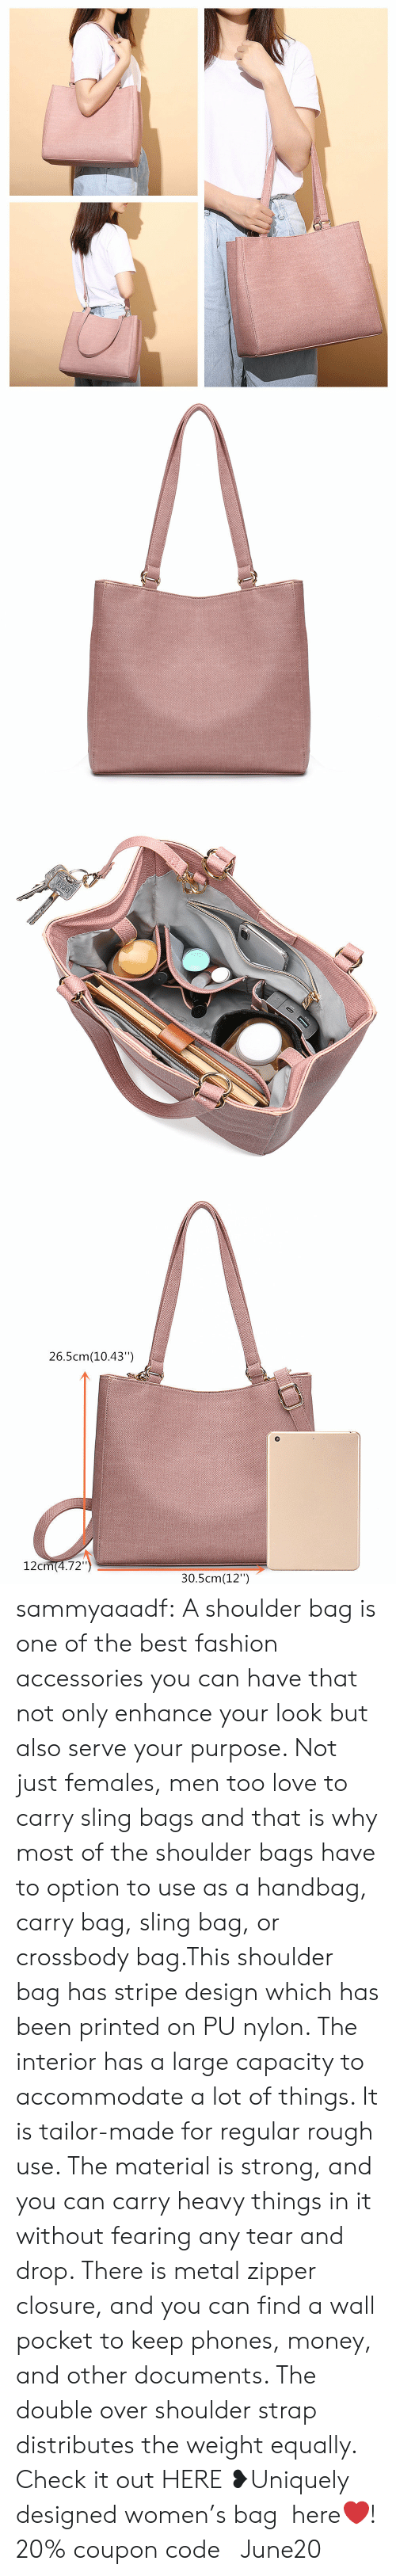 "the double: 26.5cm(10.43"")  12cm(4.72"")  30.5cm(12"") sammyaaadf: A shoulder bag is one of the best fashion accessories you can have that not only enhance your look but also serve your purpose. Not just females, men too love to carry sling bags and that is why most of the shoulder bags have to option to use as a handbag, carry bag, sling bag, or crossbody bag.This shoulder bag has stripe design which has been printed on PU nylon. The interior has a large capacity to accommodate a lot of things. It is tailor-made for regular rough use. The material is strong, and you can carry heavy things in it without fearing any tear and drop. There is metal zipper closure, and you can find a wall pocket to keep phones, money, and other documents. The double over shoulder strap distributes the weight equally.  Check it out HERE ❥Uniquely designed women's bag  here❤! 20% coupon code: June20"